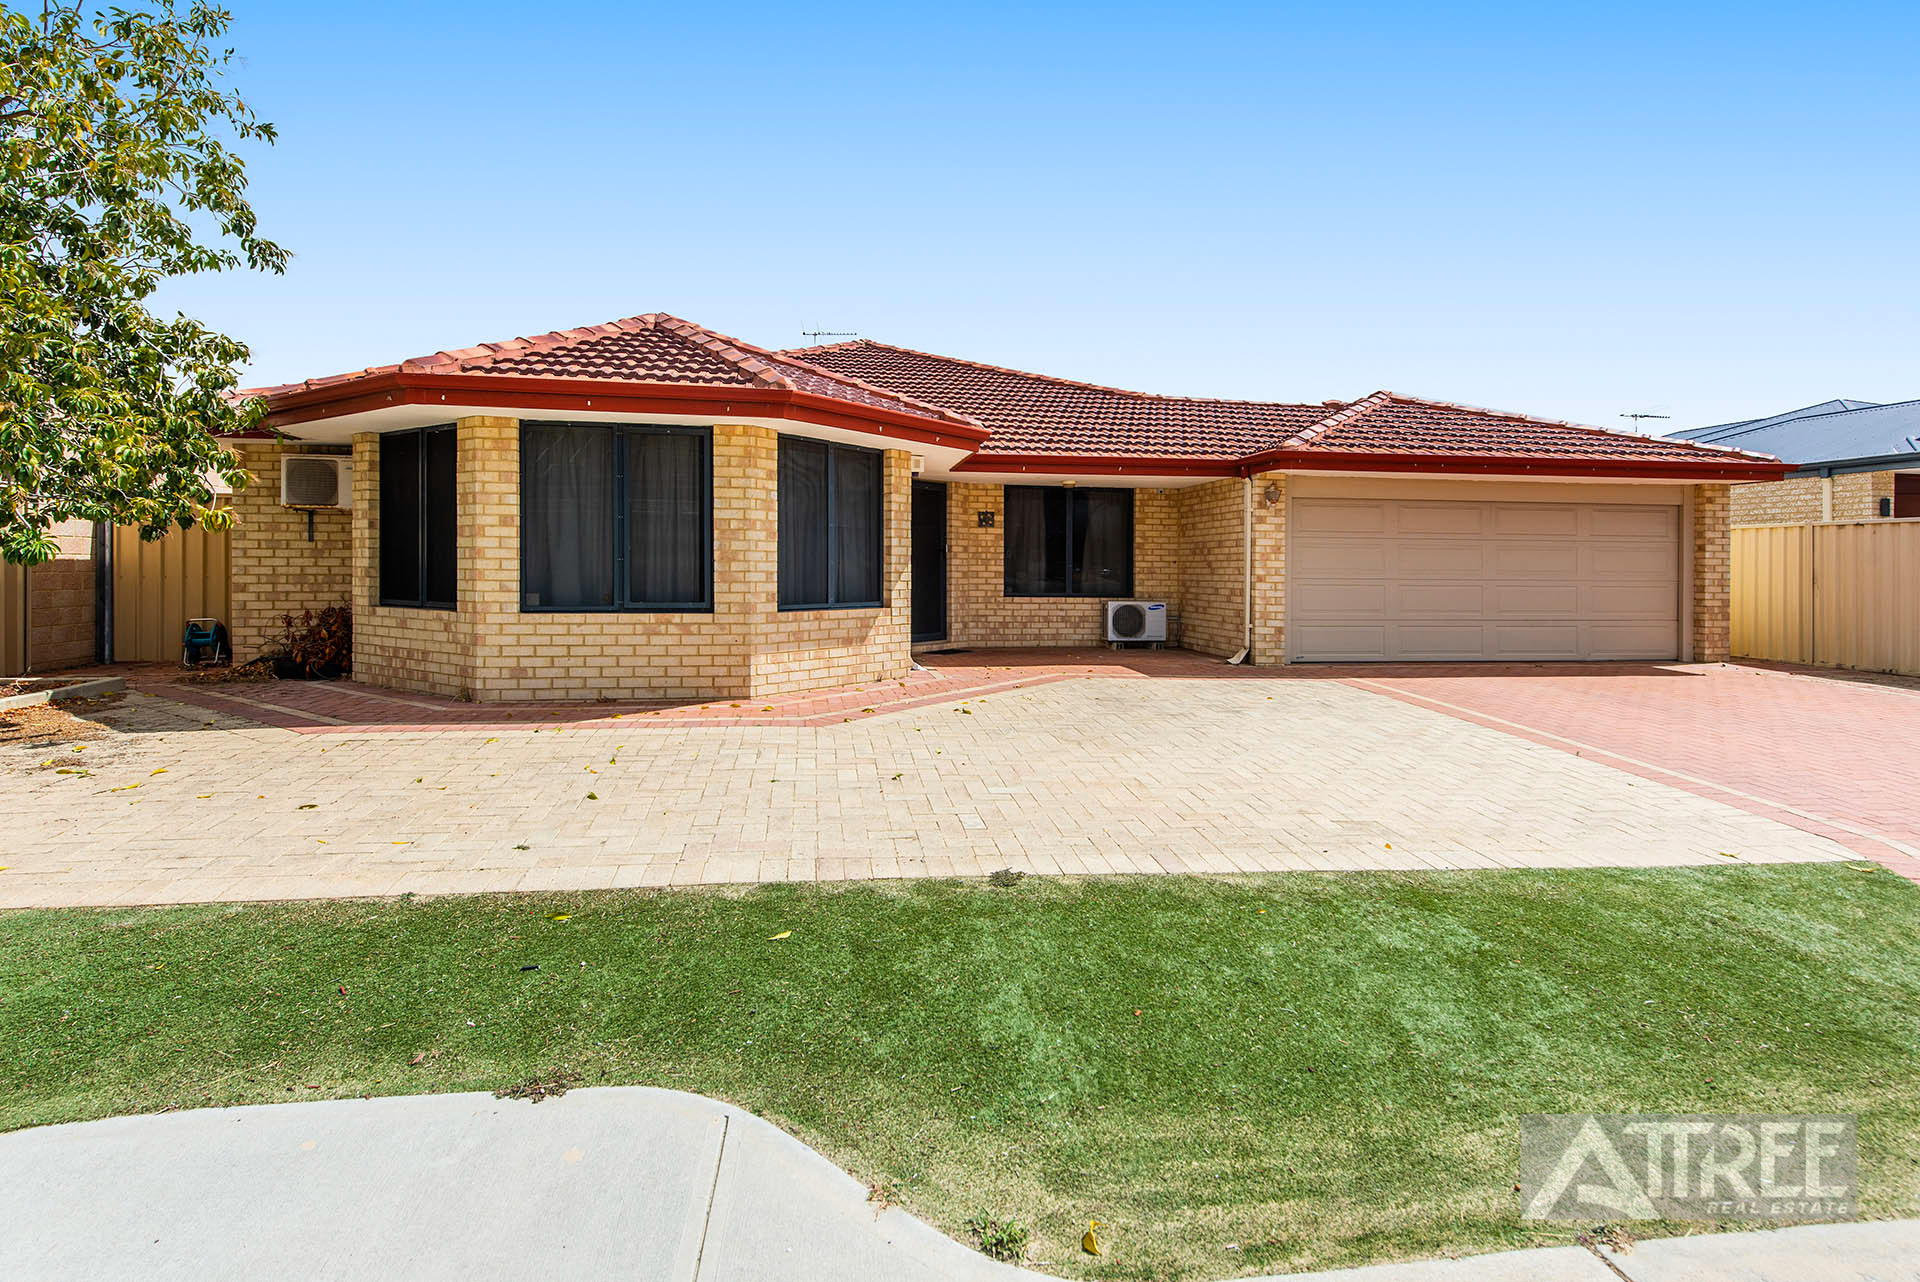 Property for sale in SOUTHERN RIVER, 47 Dalyup Road, Andrew Vidot -  The Vidots : Attree Real Estate